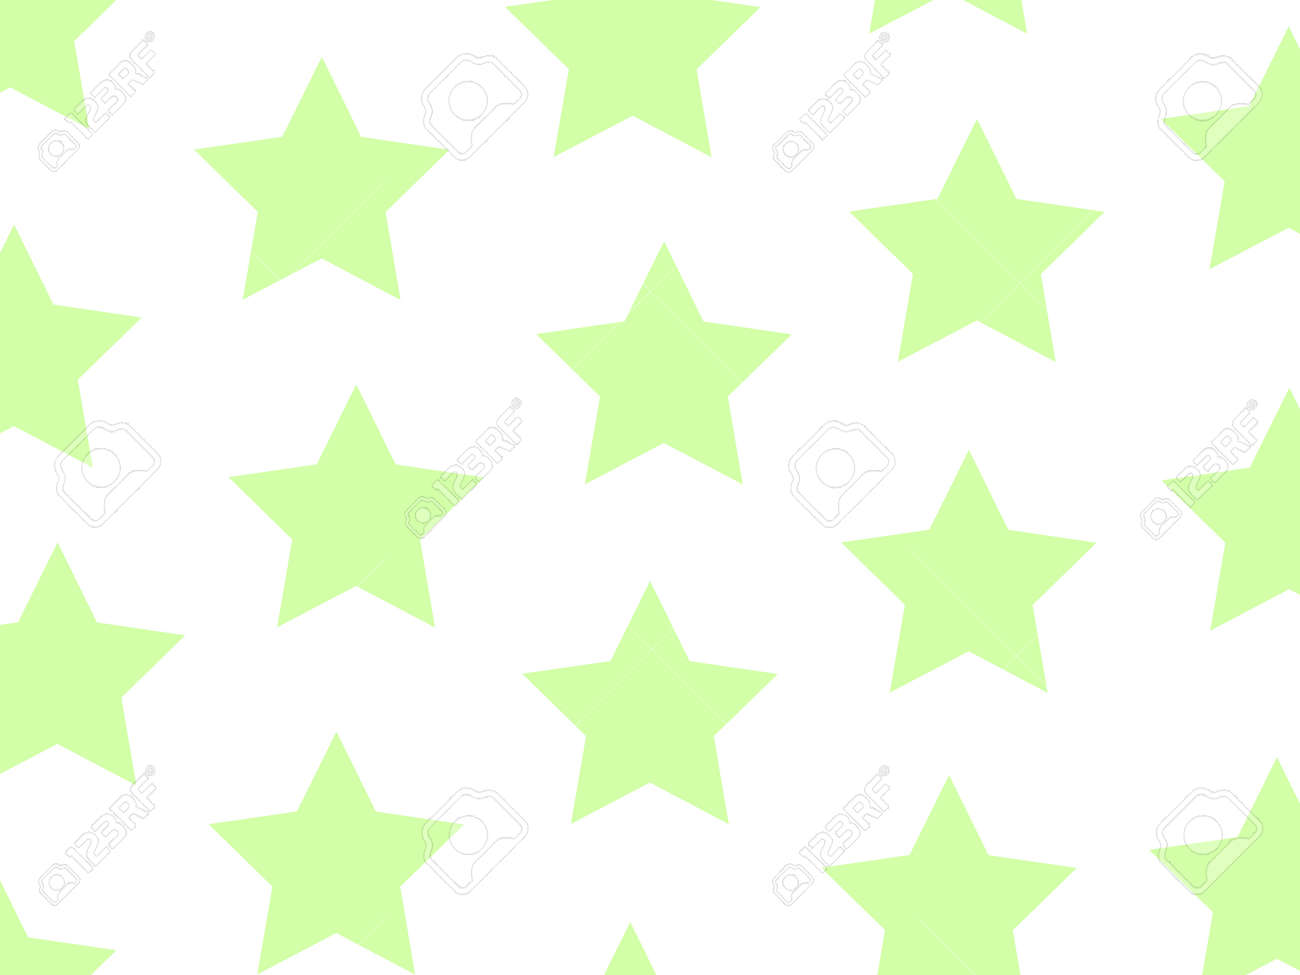 Star Template Containing Multiple Shapes For Your Christmas